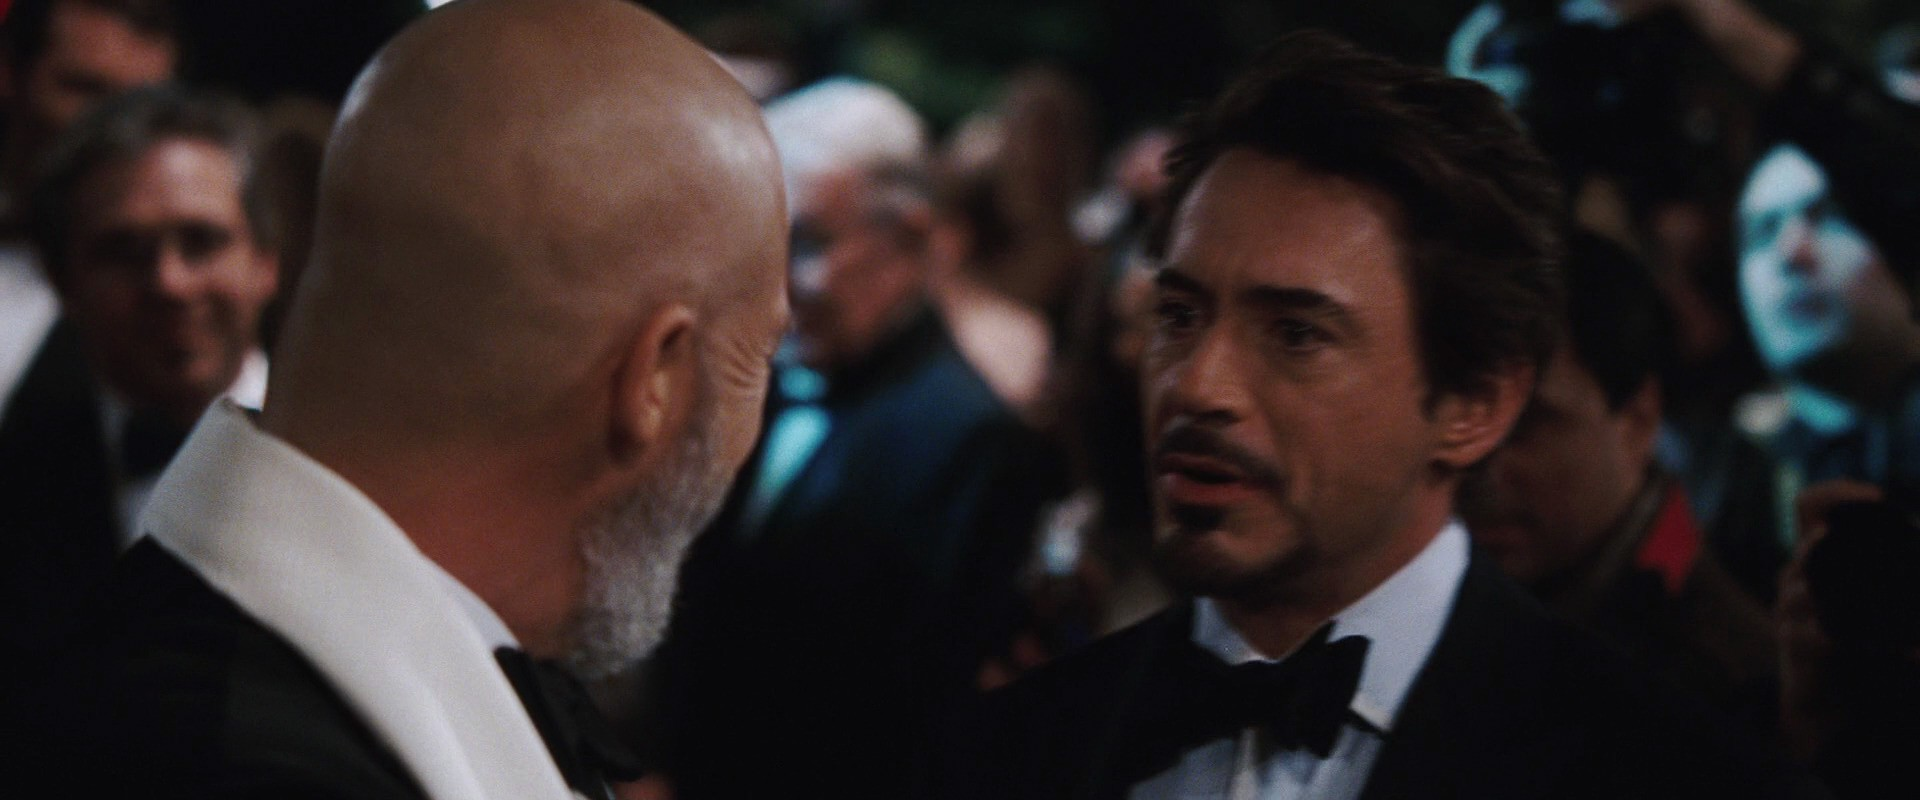 http://caps.pictures/200/8-iron-man1/full/iron-man1-movie-screencaps.com-8109.jpg